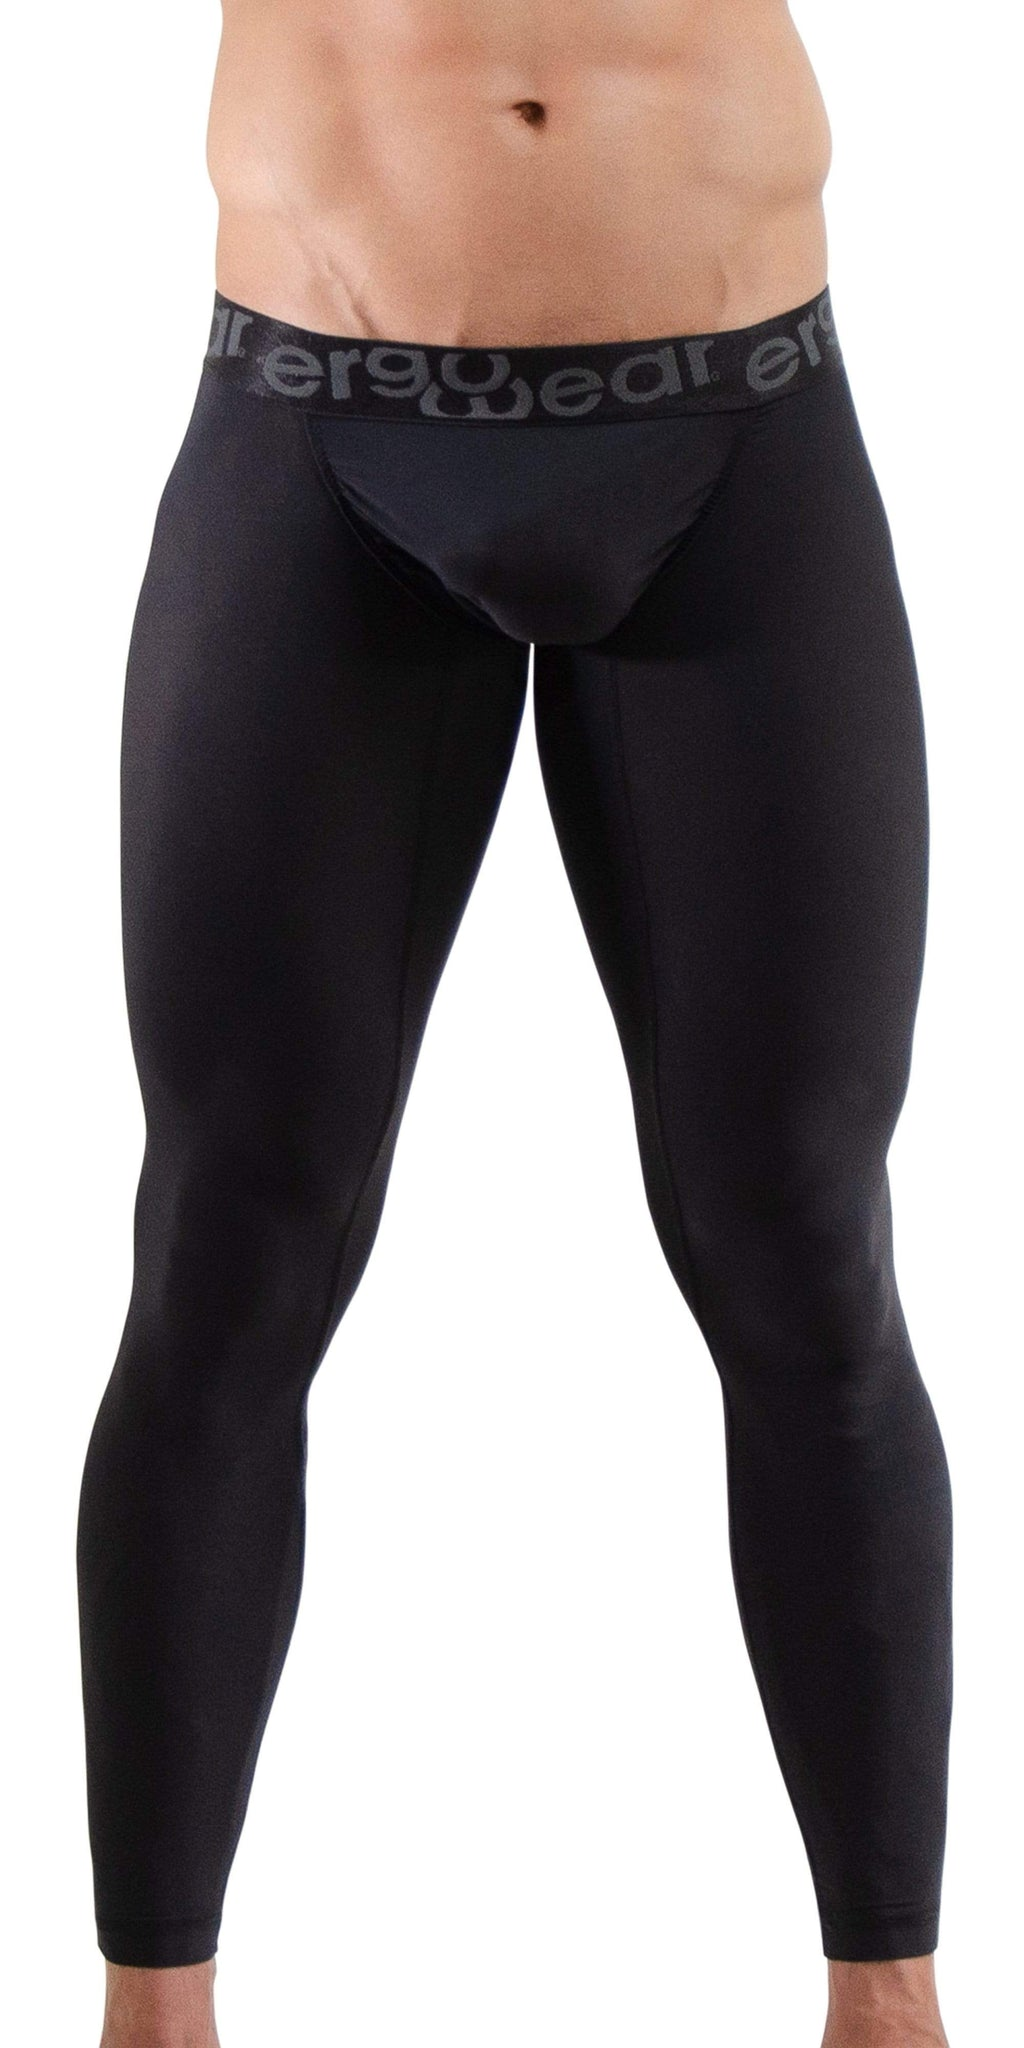 ERGOWEAR FEEL XV Long Johns In Black